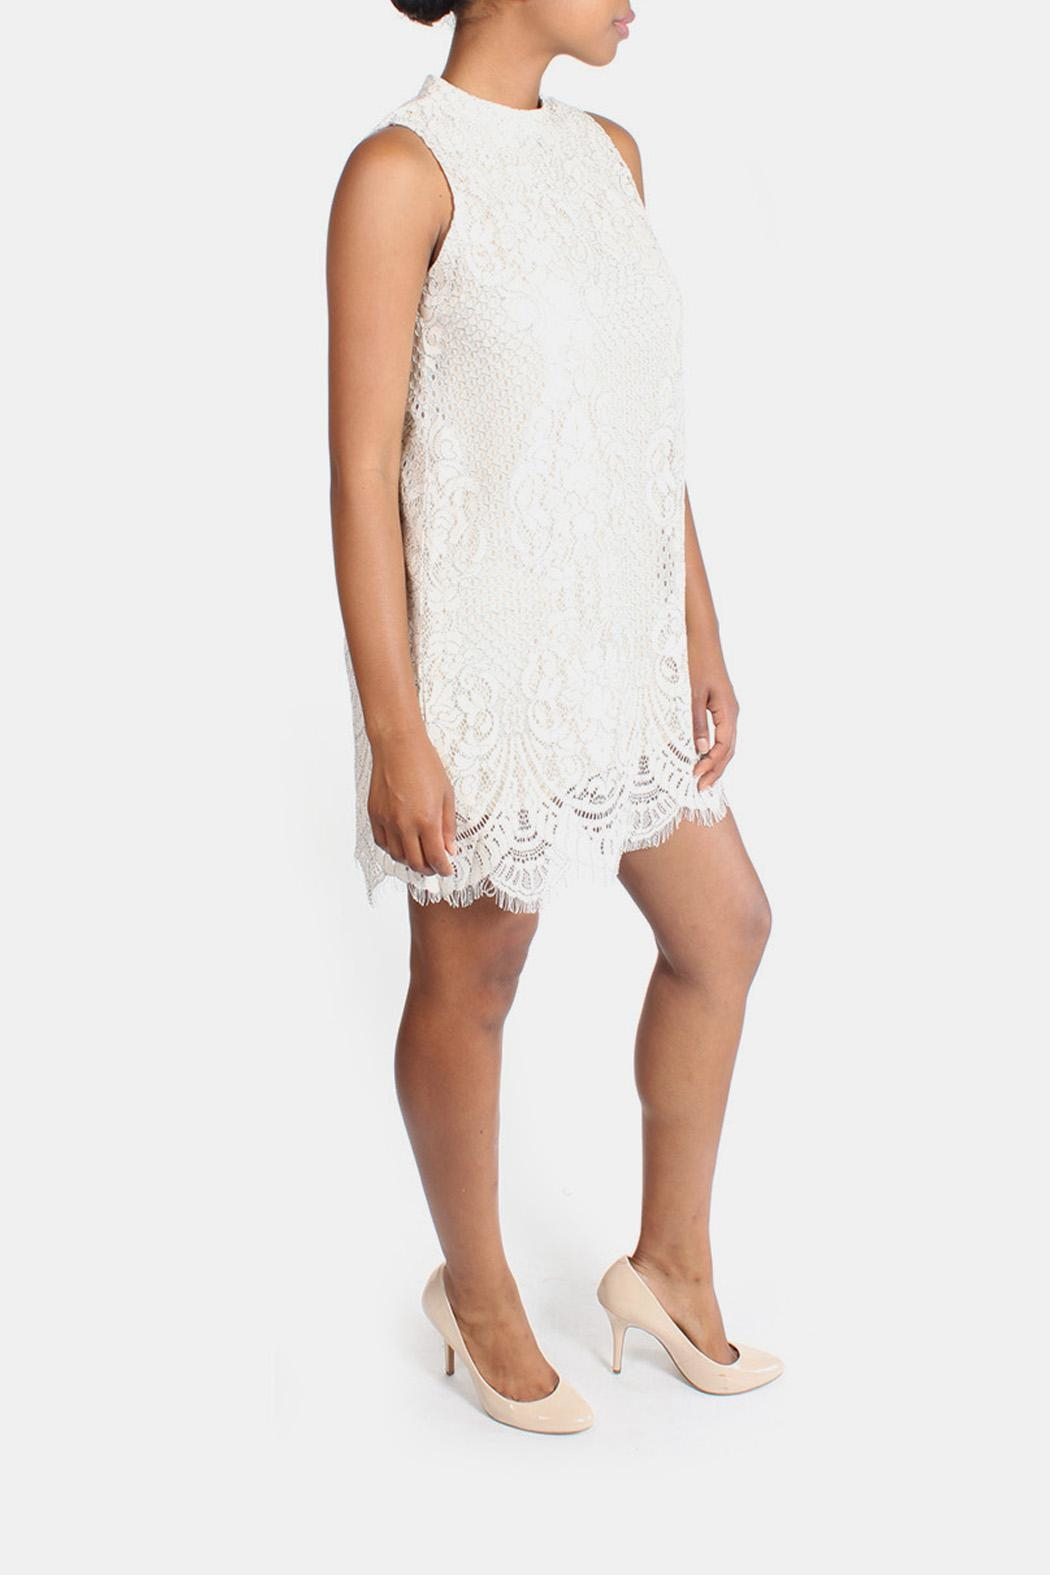 Skies Are Blue Cream Lace High-Neck-Dress - Front Full Image